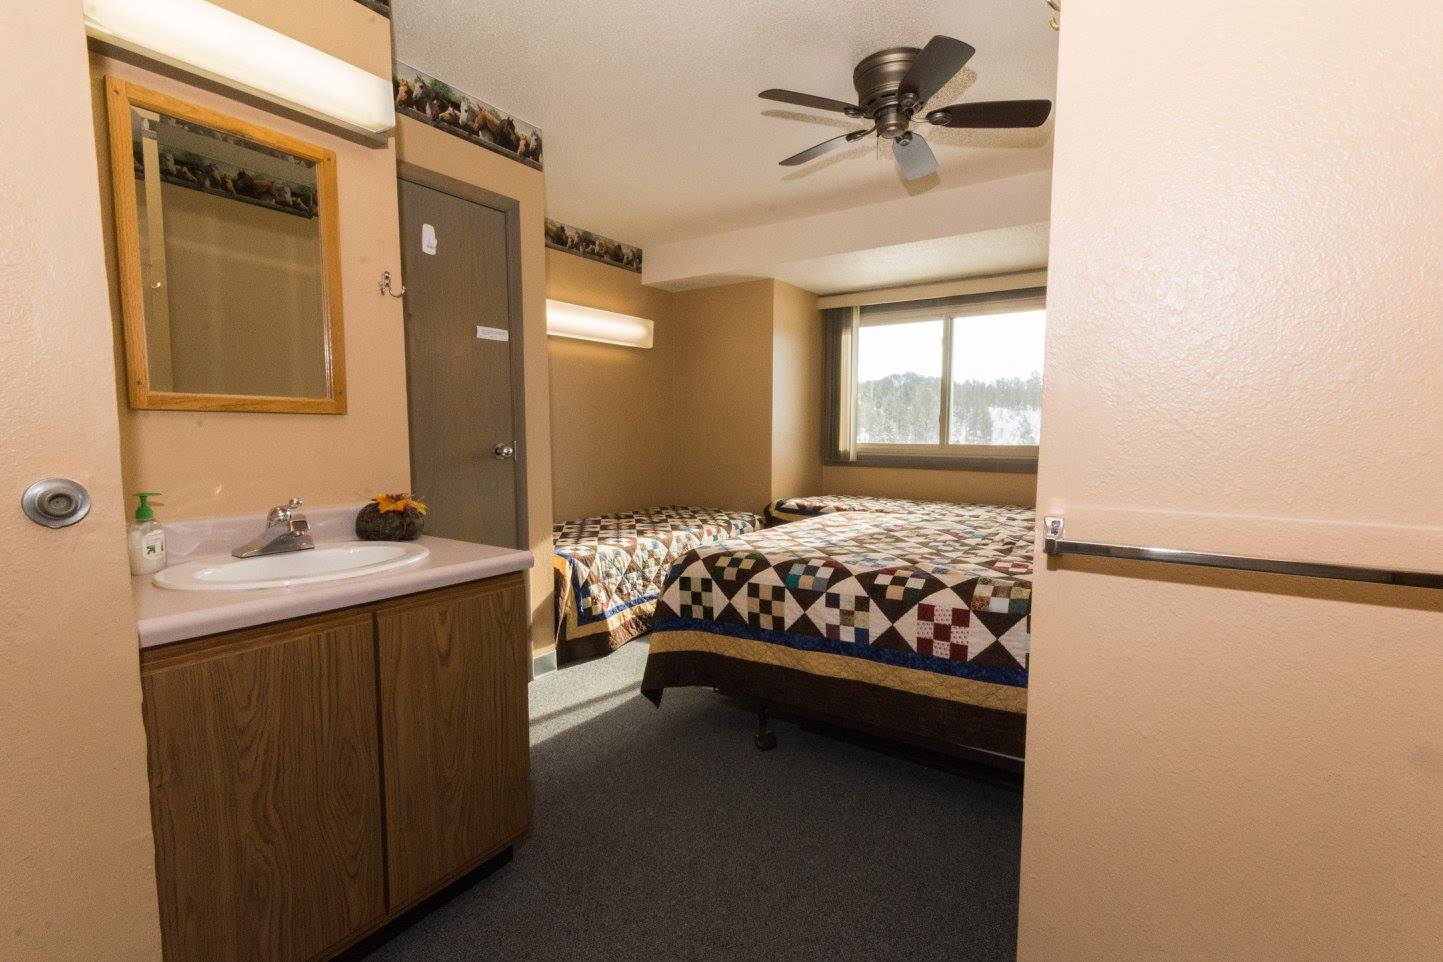 Our rooms include a sink and shared bathroom.